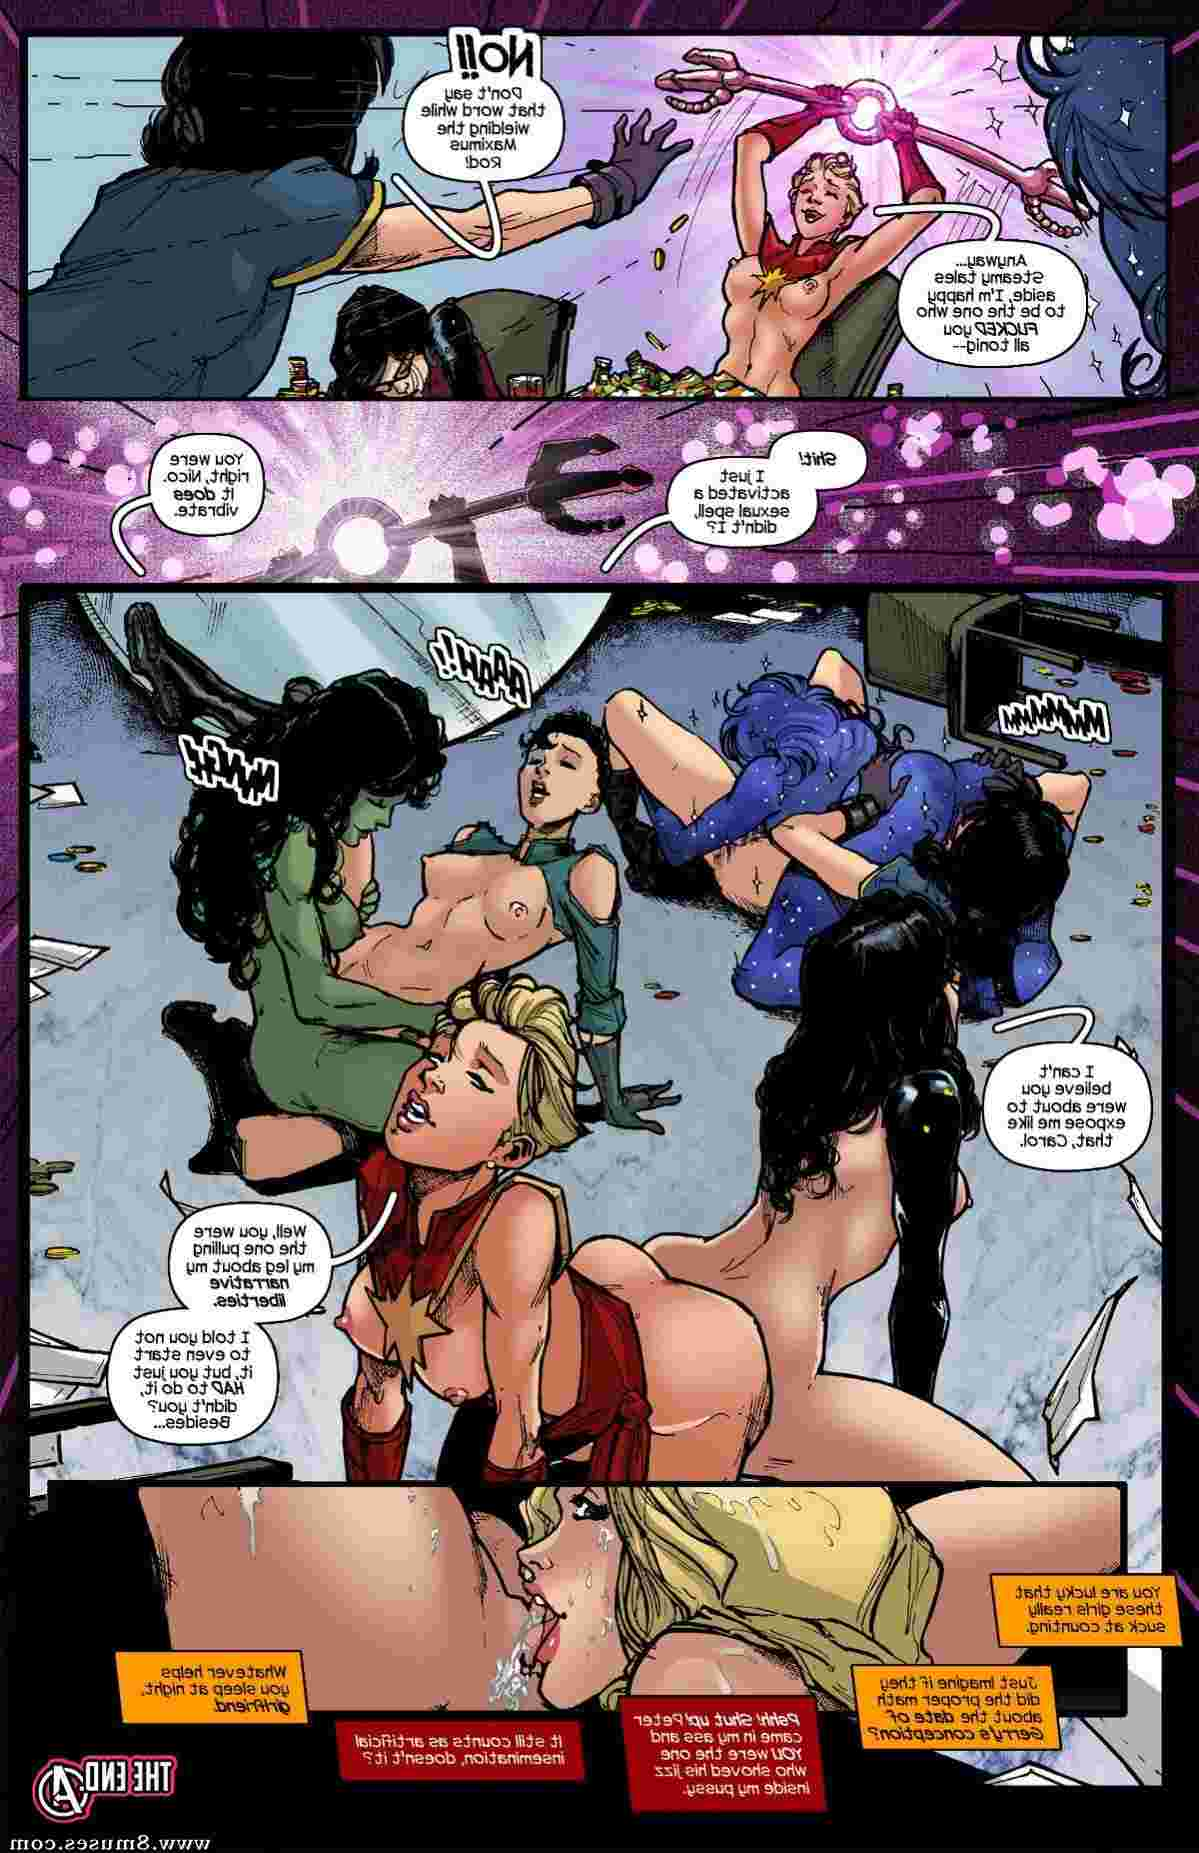 Tracy-Scops-Comics/A-Force-Strip-Poker-Stars A-Force_-_Strip_Poker_Stars__8muses_-_Sex_and_Porn_Comics_10.jpg